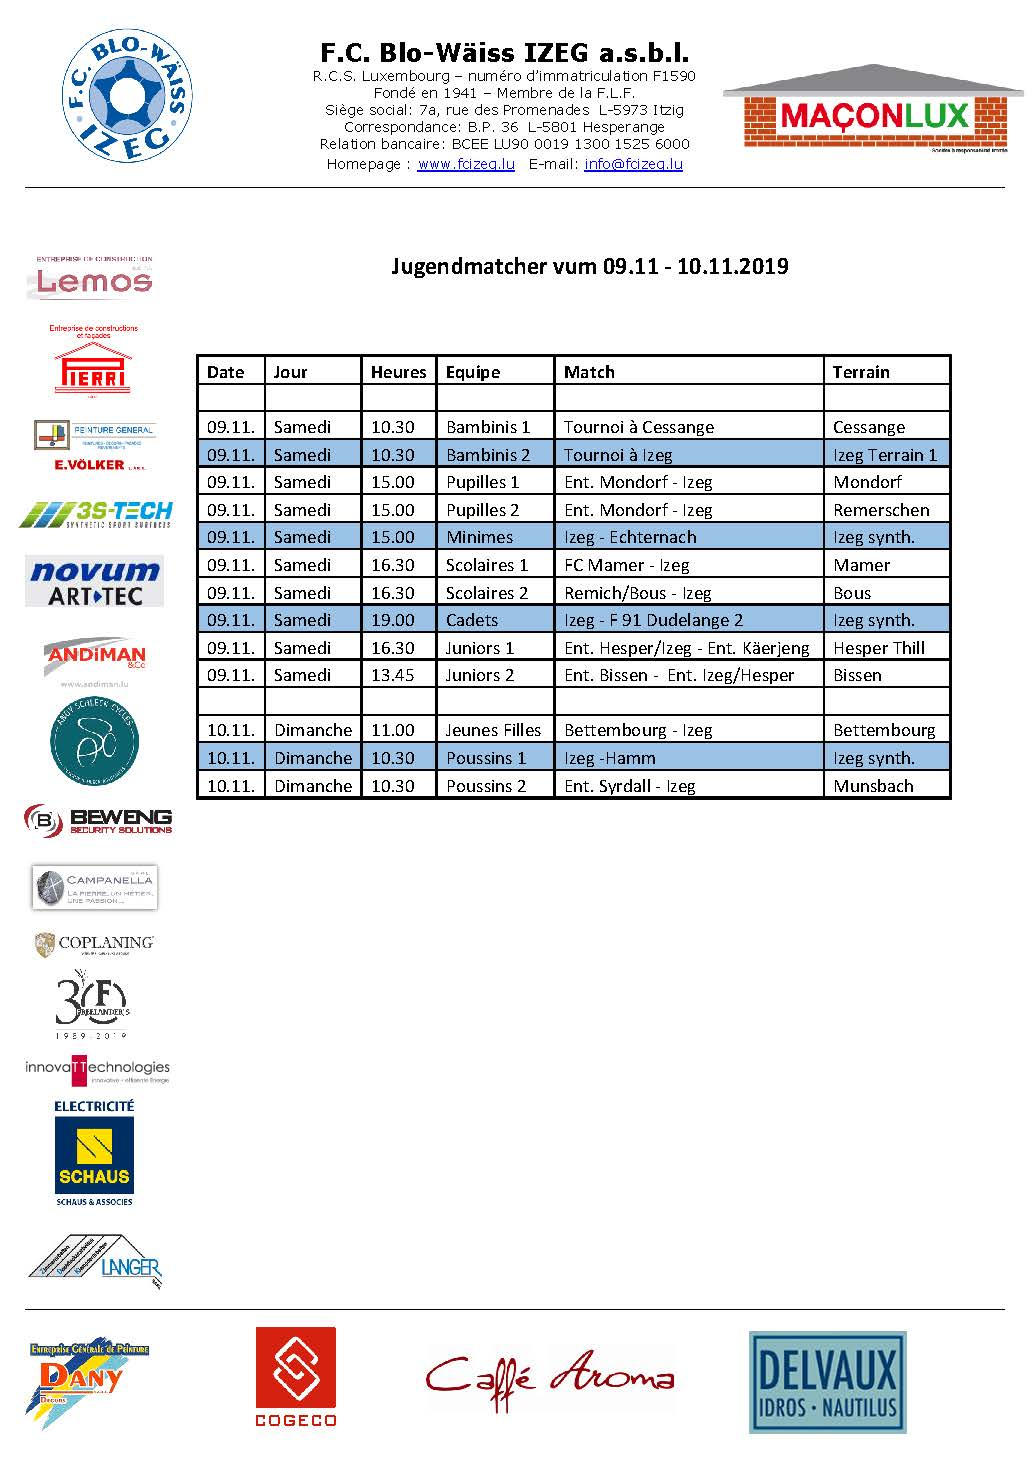 Jugendmatcher vum Weekend 09. bis 10. November